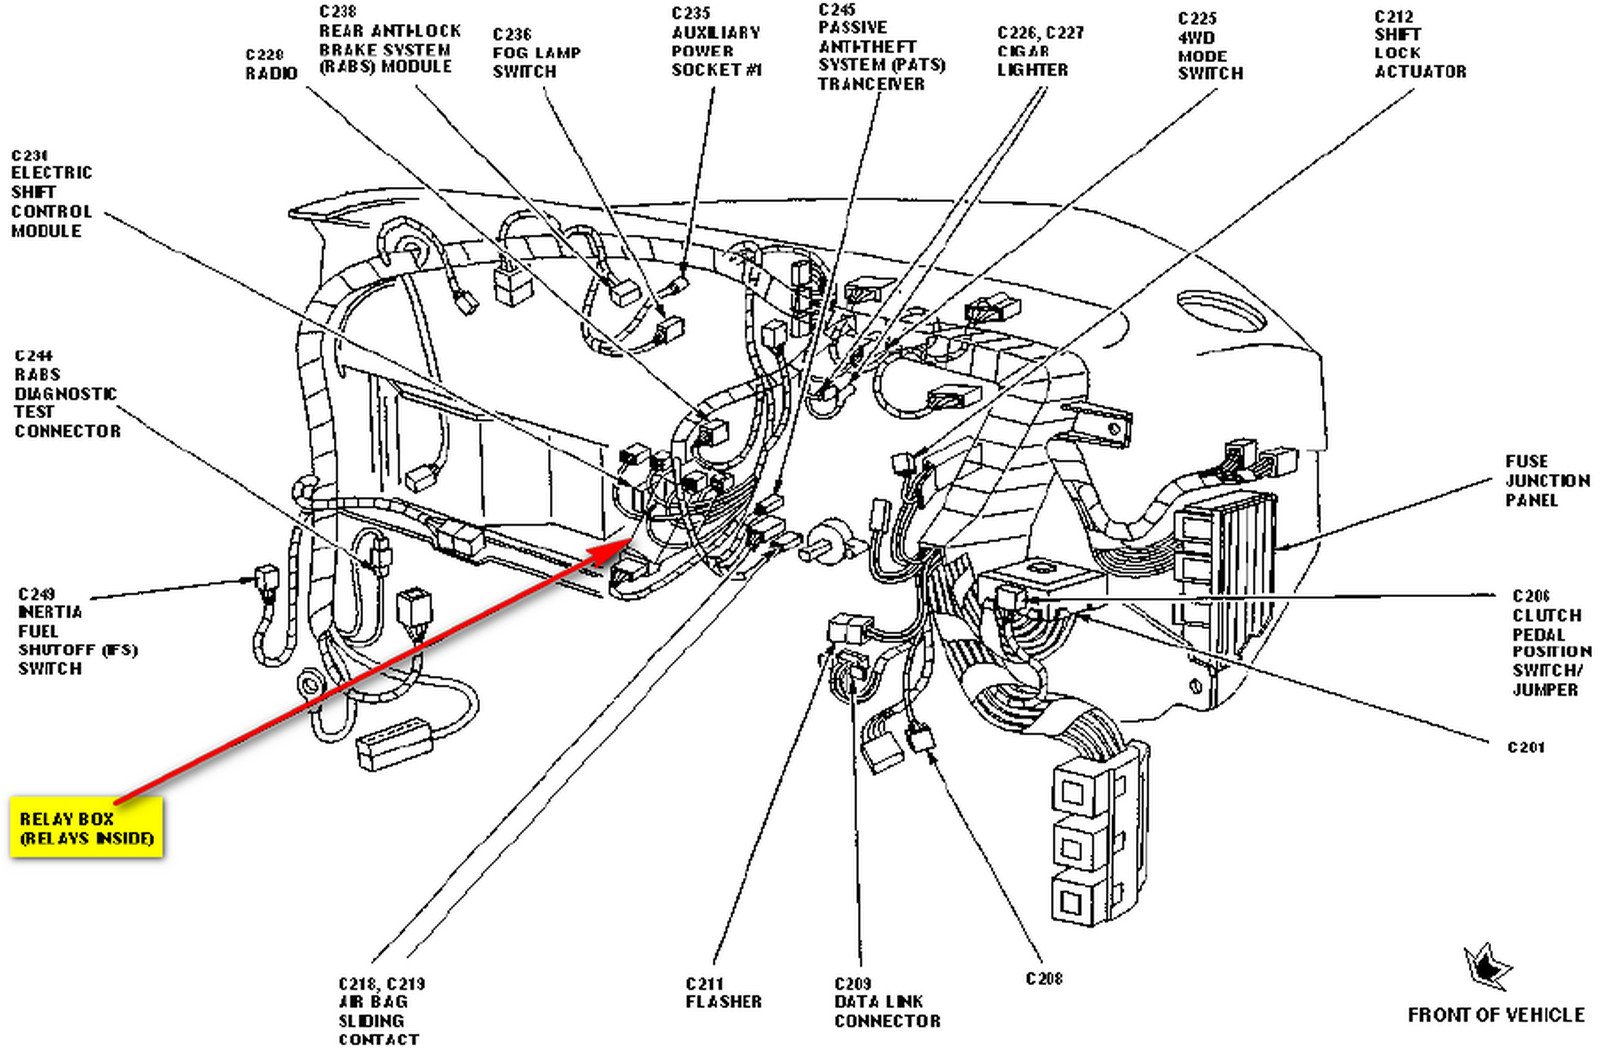 1bbr3 Find Wiring Diagram Tail Lights likewise Power Locks Not Working On 97 F150 Relays in addition Jeep Wrangler Rubicon Exhaust System Diagram further 1997 Honda Civic Cooling Fan Wiring Circuit Diagram further 1997 Infiniti Qx4 Wiring Diagram And Electrical System Service And Troubleshooting. on radio wiring diagram 1997 jeep grand cherokee